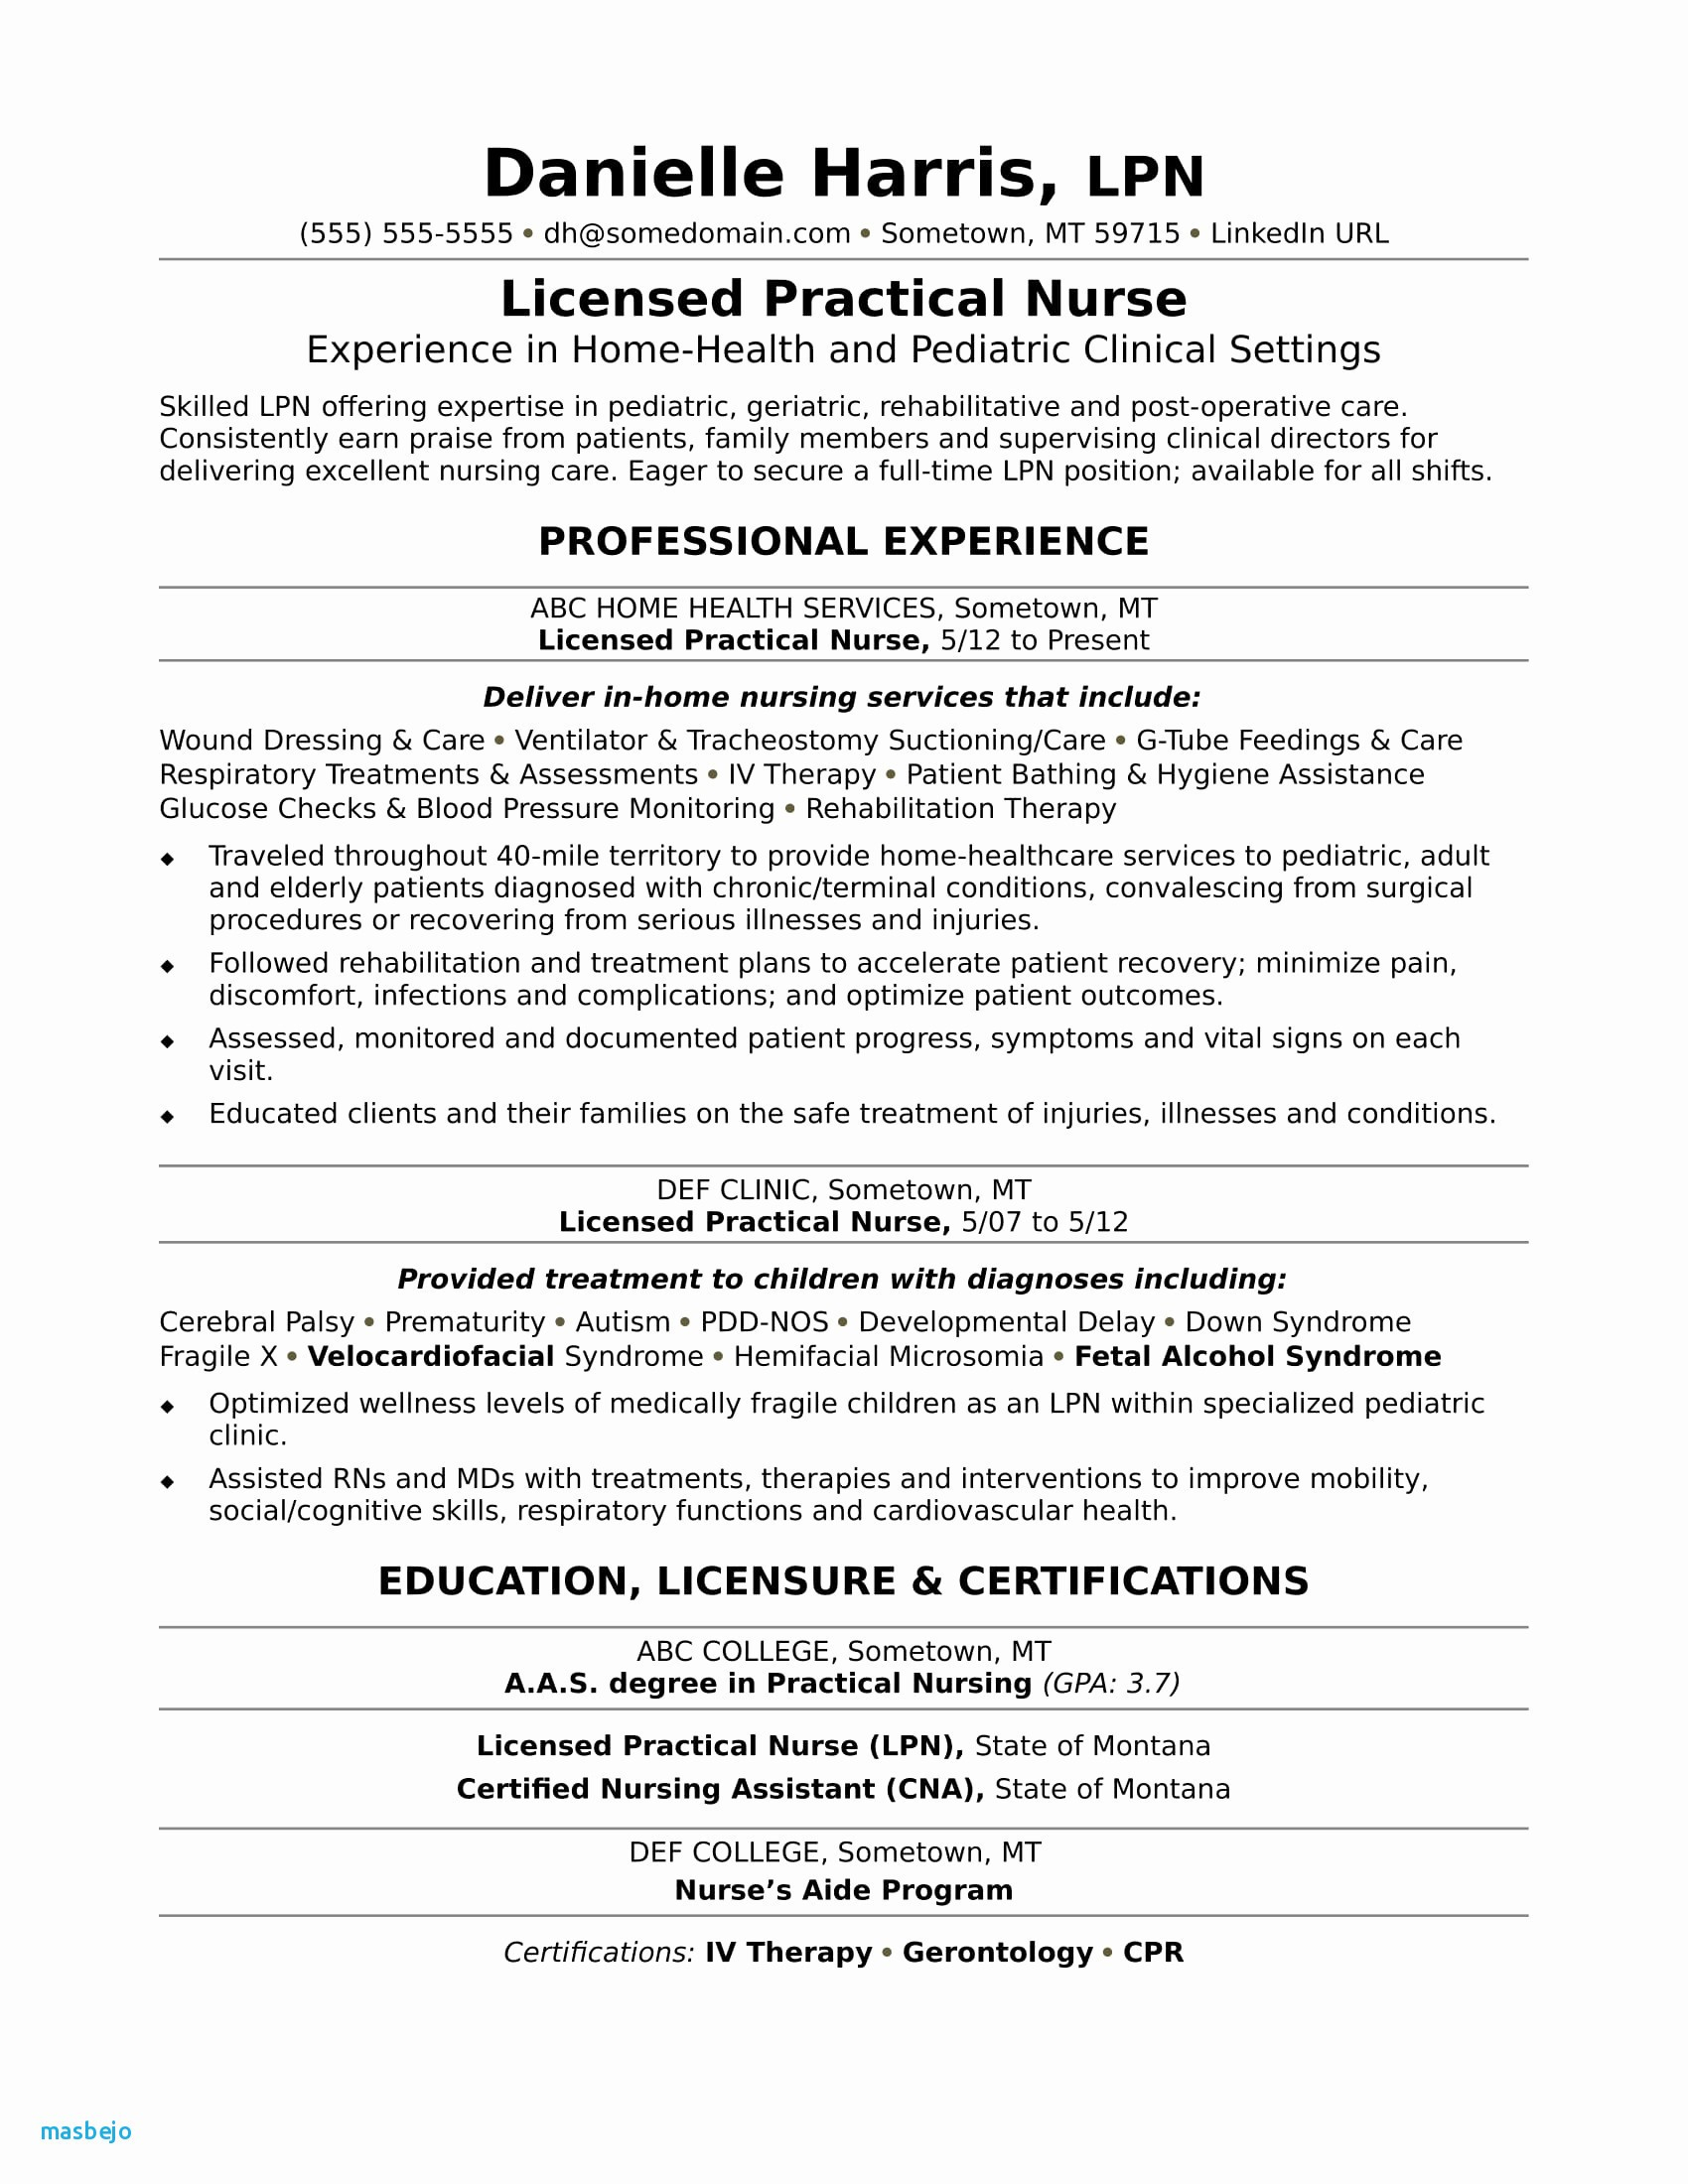 Rn Skills Resume - Sample Resume for A New Registered Nurse Resume Resume Examples